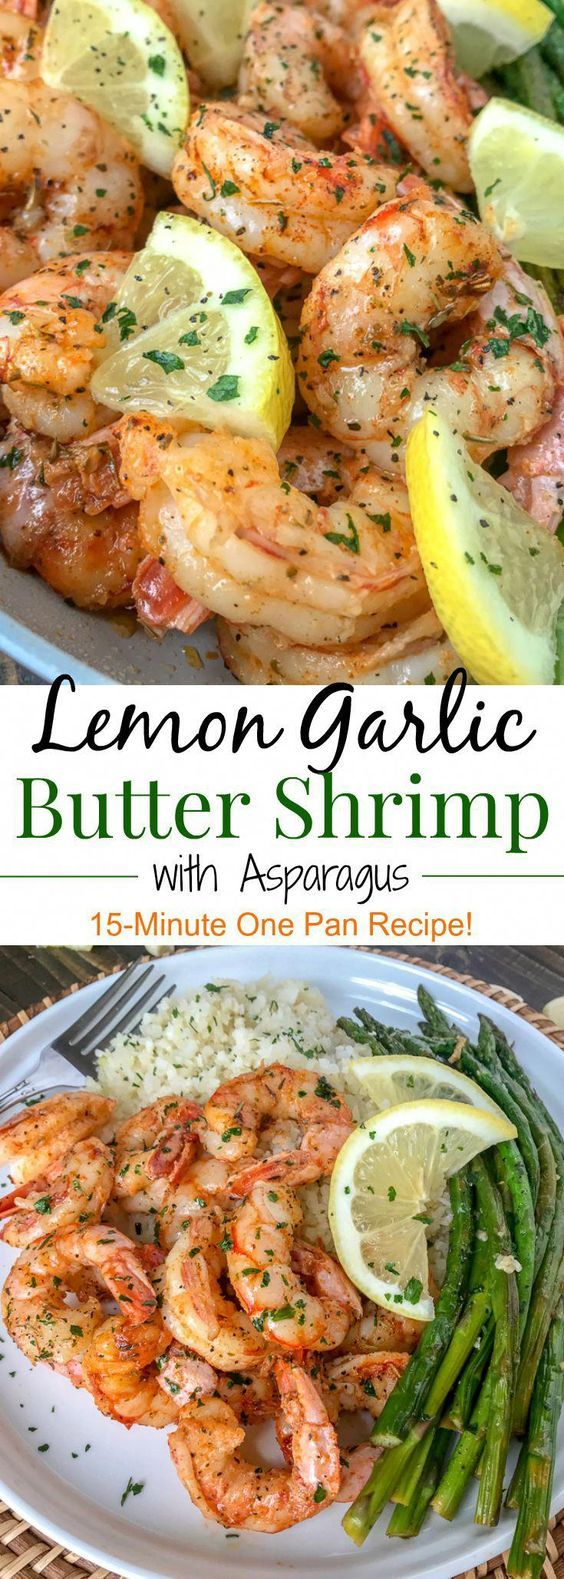 LEMON GARLIC BUTTER SHRIMP WITH ASPARAGUS #recipes #dinnerrecipes #dishesrecipes #dinnerdishes #dinnerdishesrecipes #food #foodporn #healthy #yummy #instafood #foodie #delicious #dinner #breakfast #dessert #lunch #vegan #cake #eatclean #homemade #diet #healthyfood #cleaneating #foodstagram